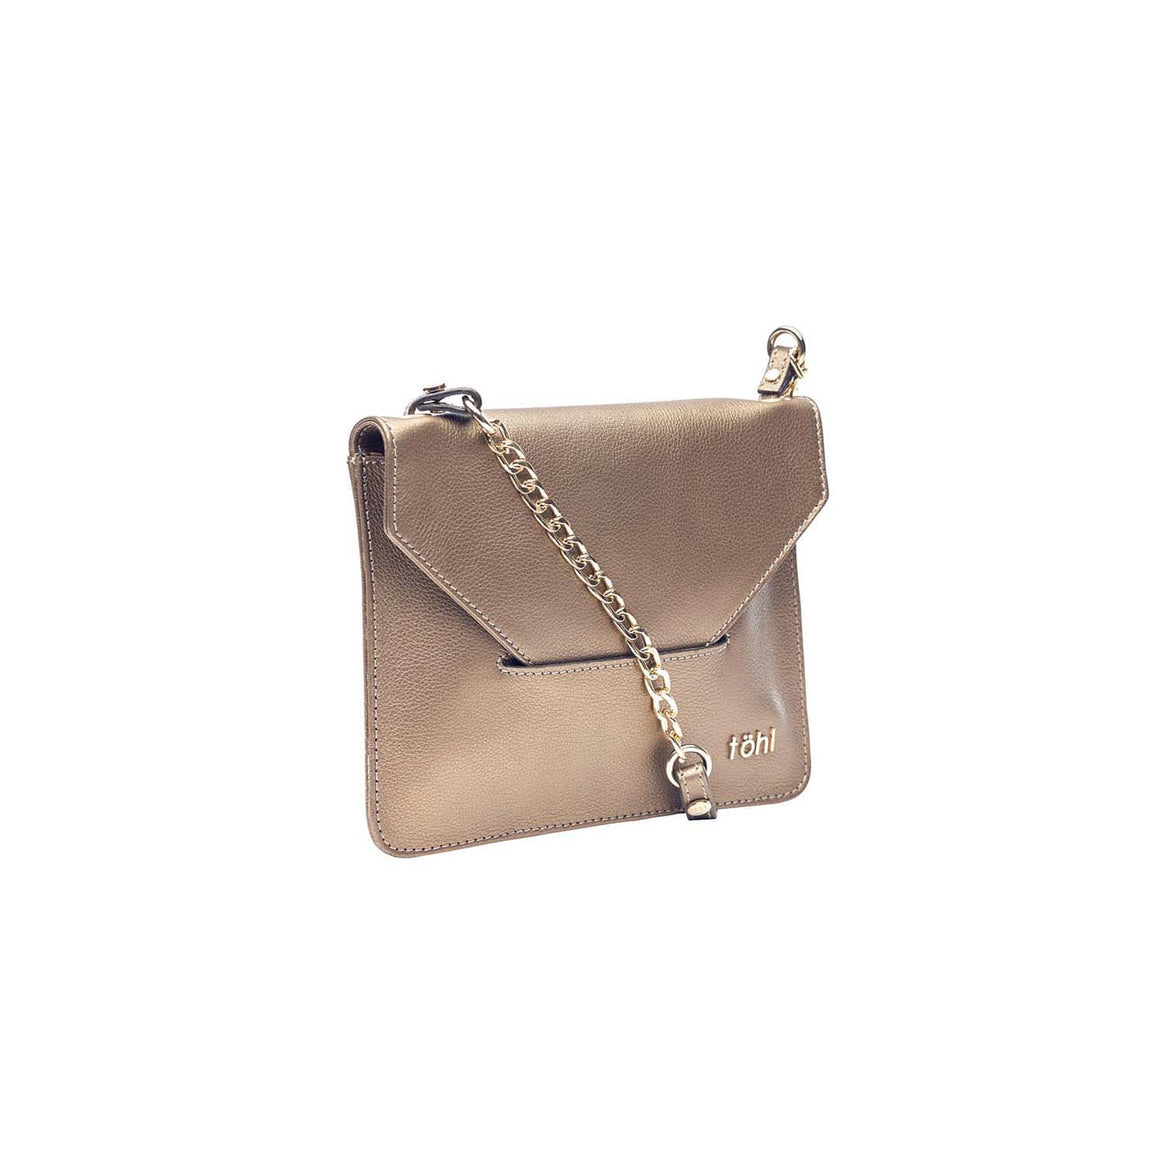 SG 0029 - TOHL ANNADALE WOMEN'S SLING & CROSSBODY BAG - METALLIC COPPER